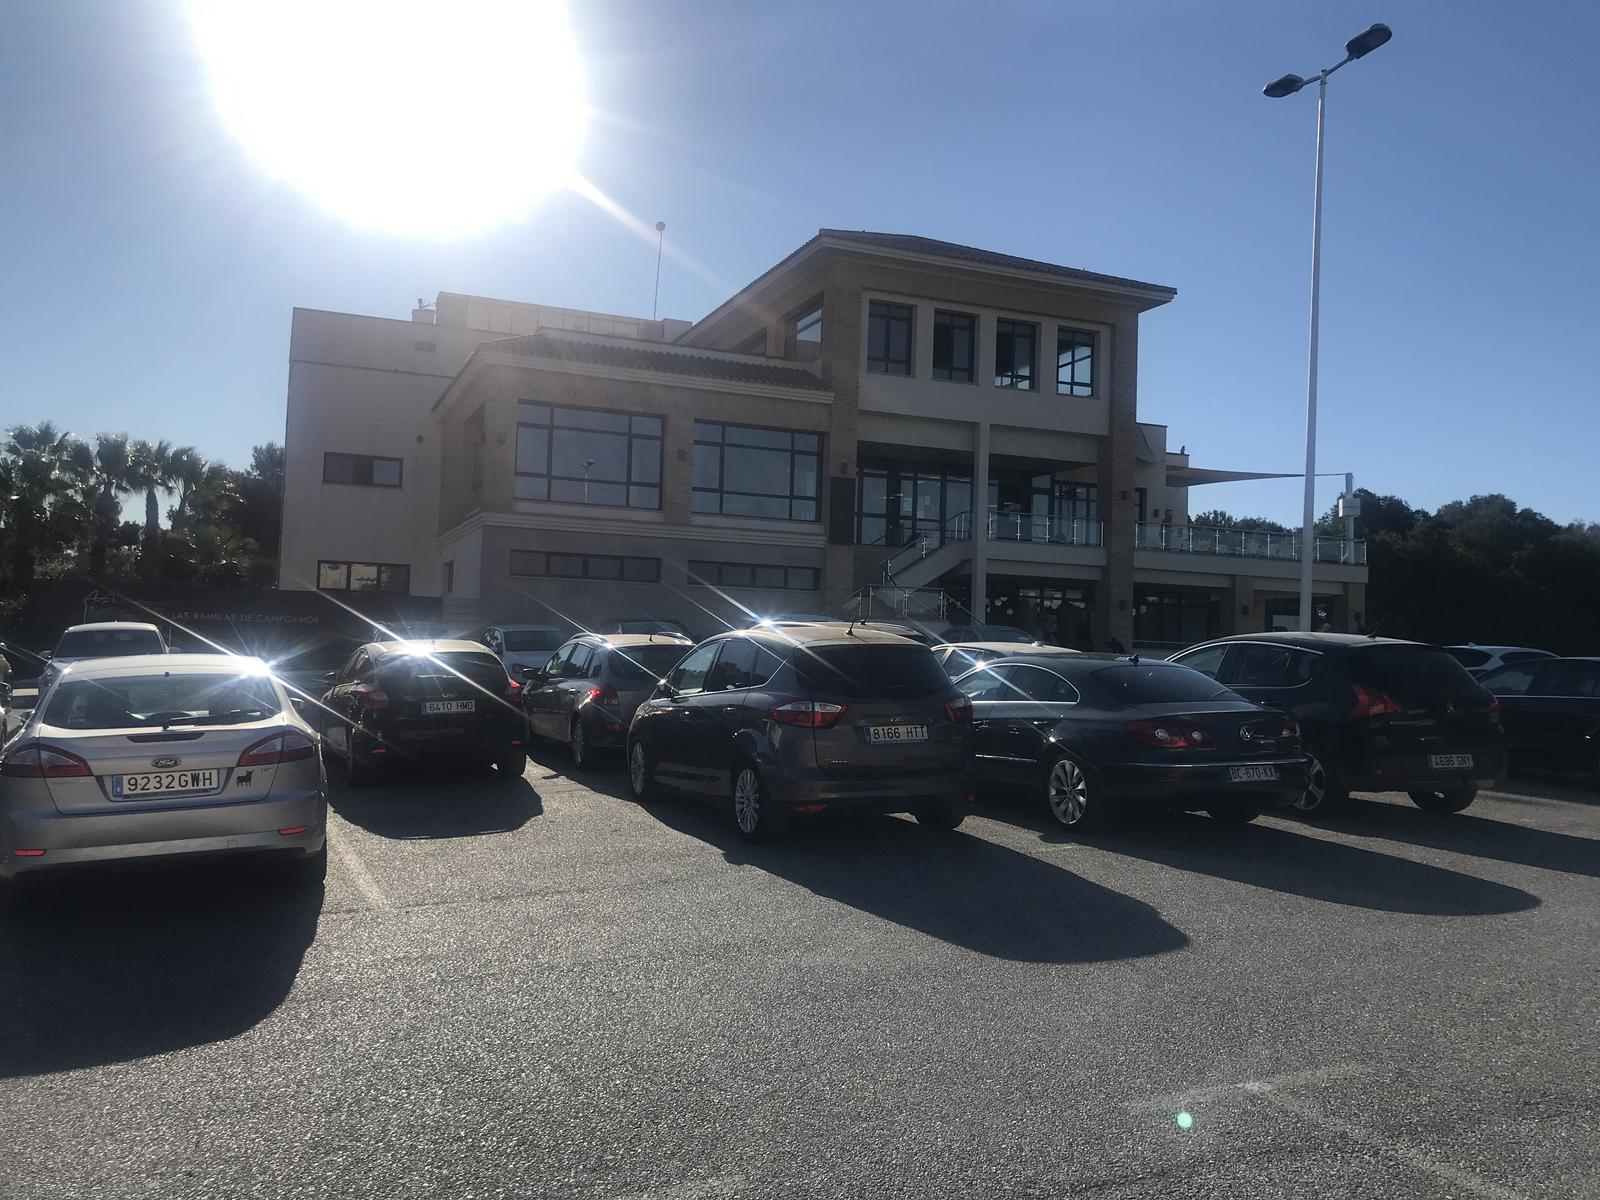 Photo of las Ramblas Golf Club and Restaurant to Campoamor beach and back